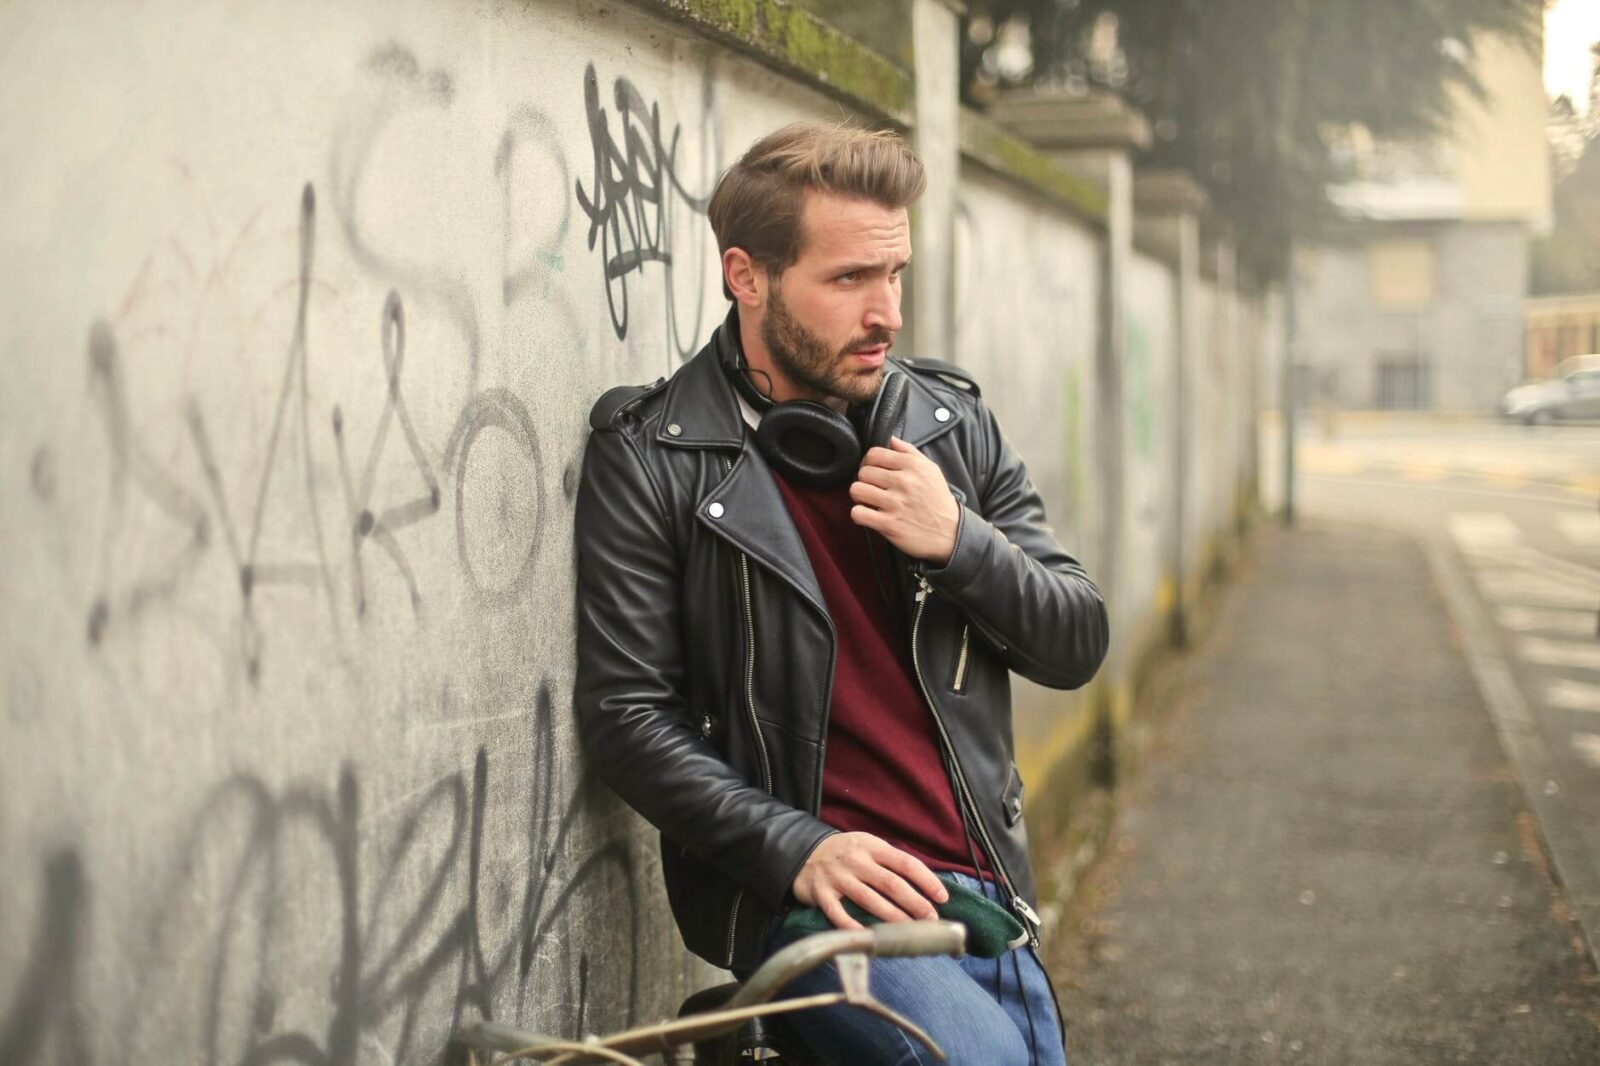 SOME EFFECTIVE TIPS TO BUYING A GENUINE LEATHER JACKET